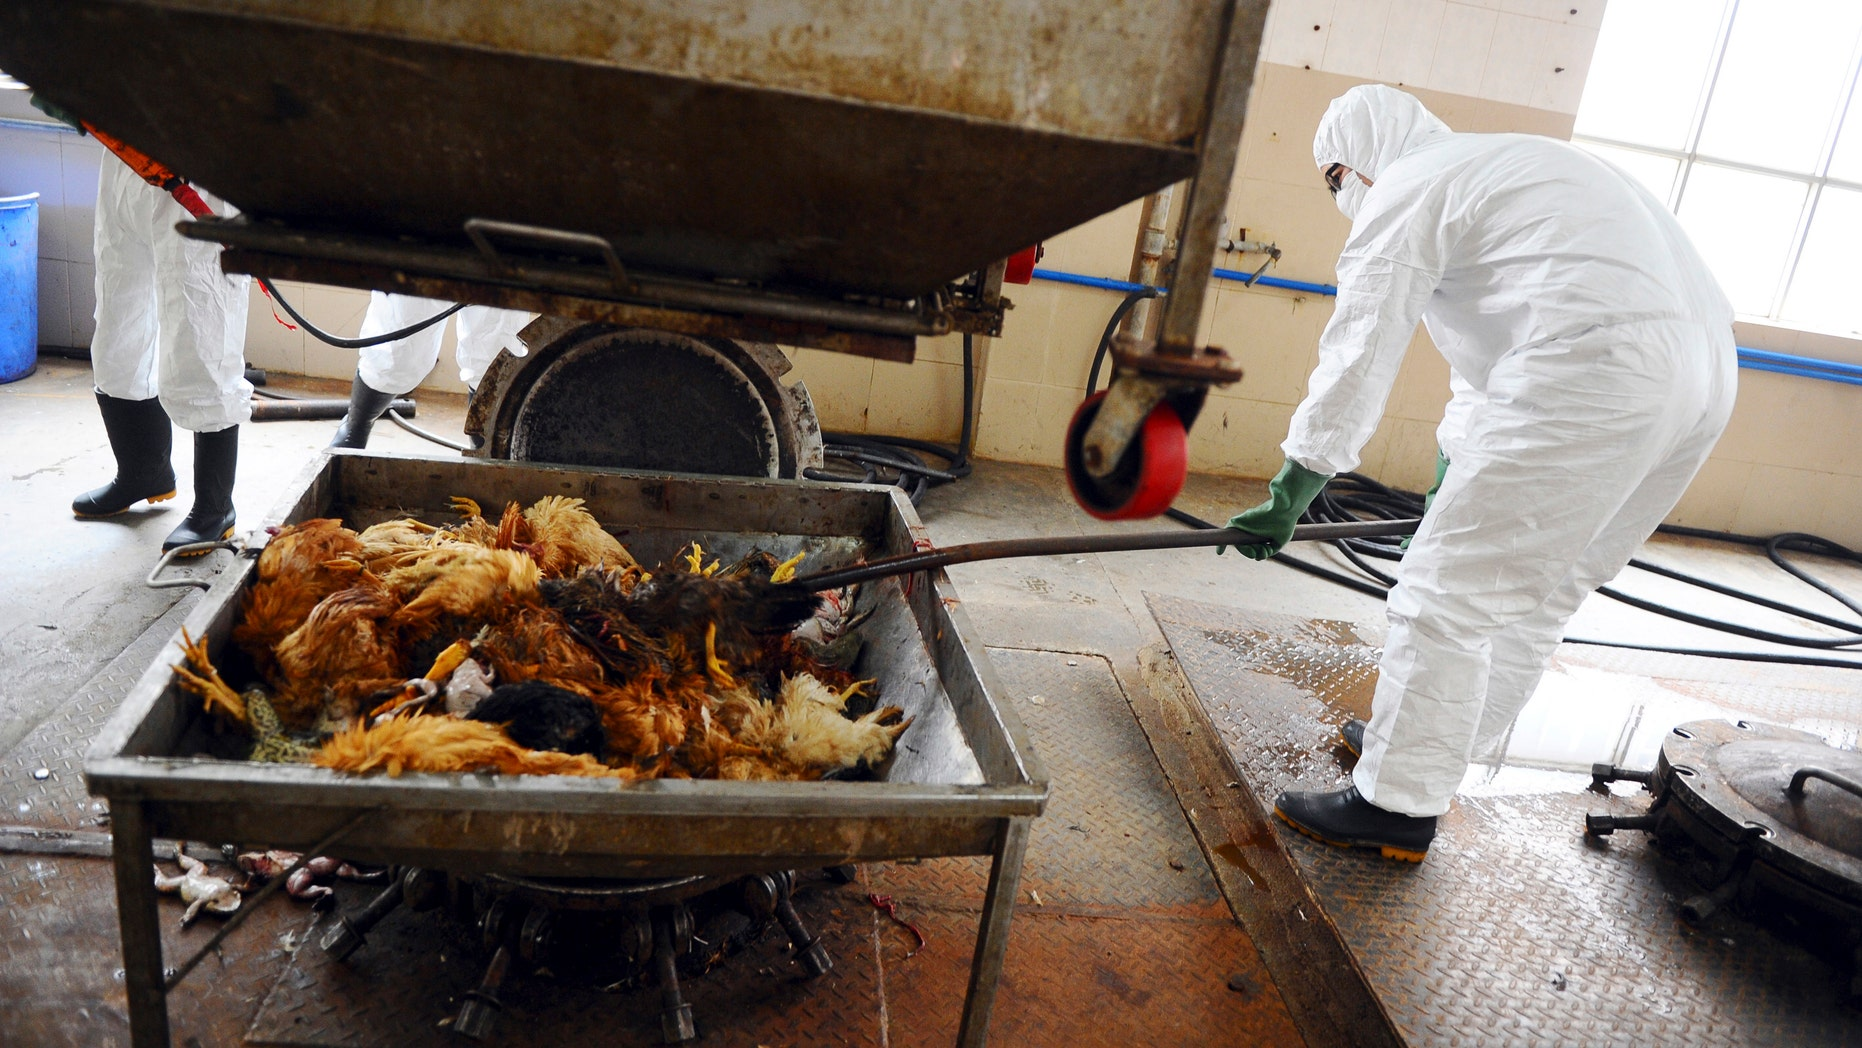 Employees dispose uninfected dead birds at a treatment plant as part of preventive measures against the H7N9 bird flu in Guangzhou, Guangdong province in China.